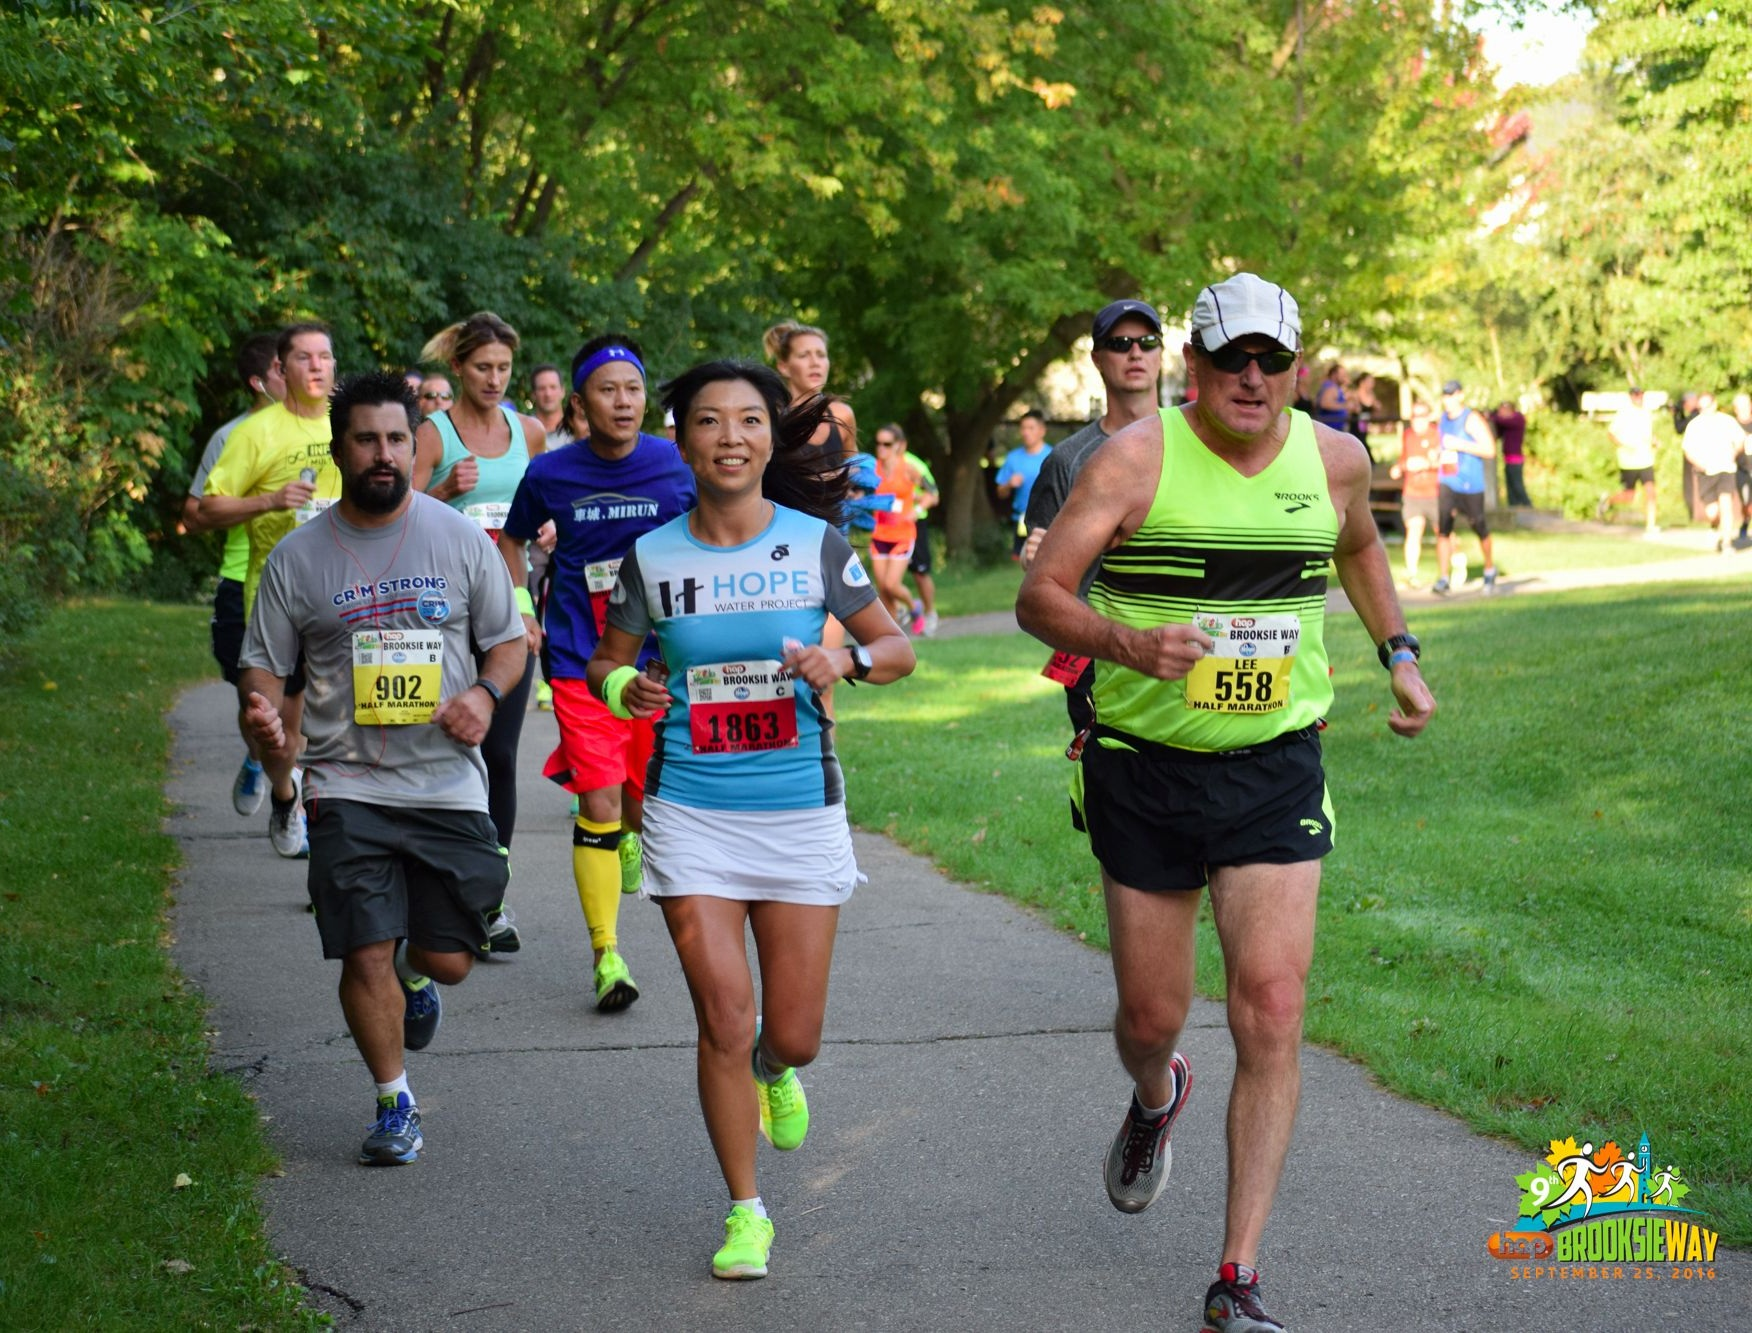 The Brooksie Way Half Marathon